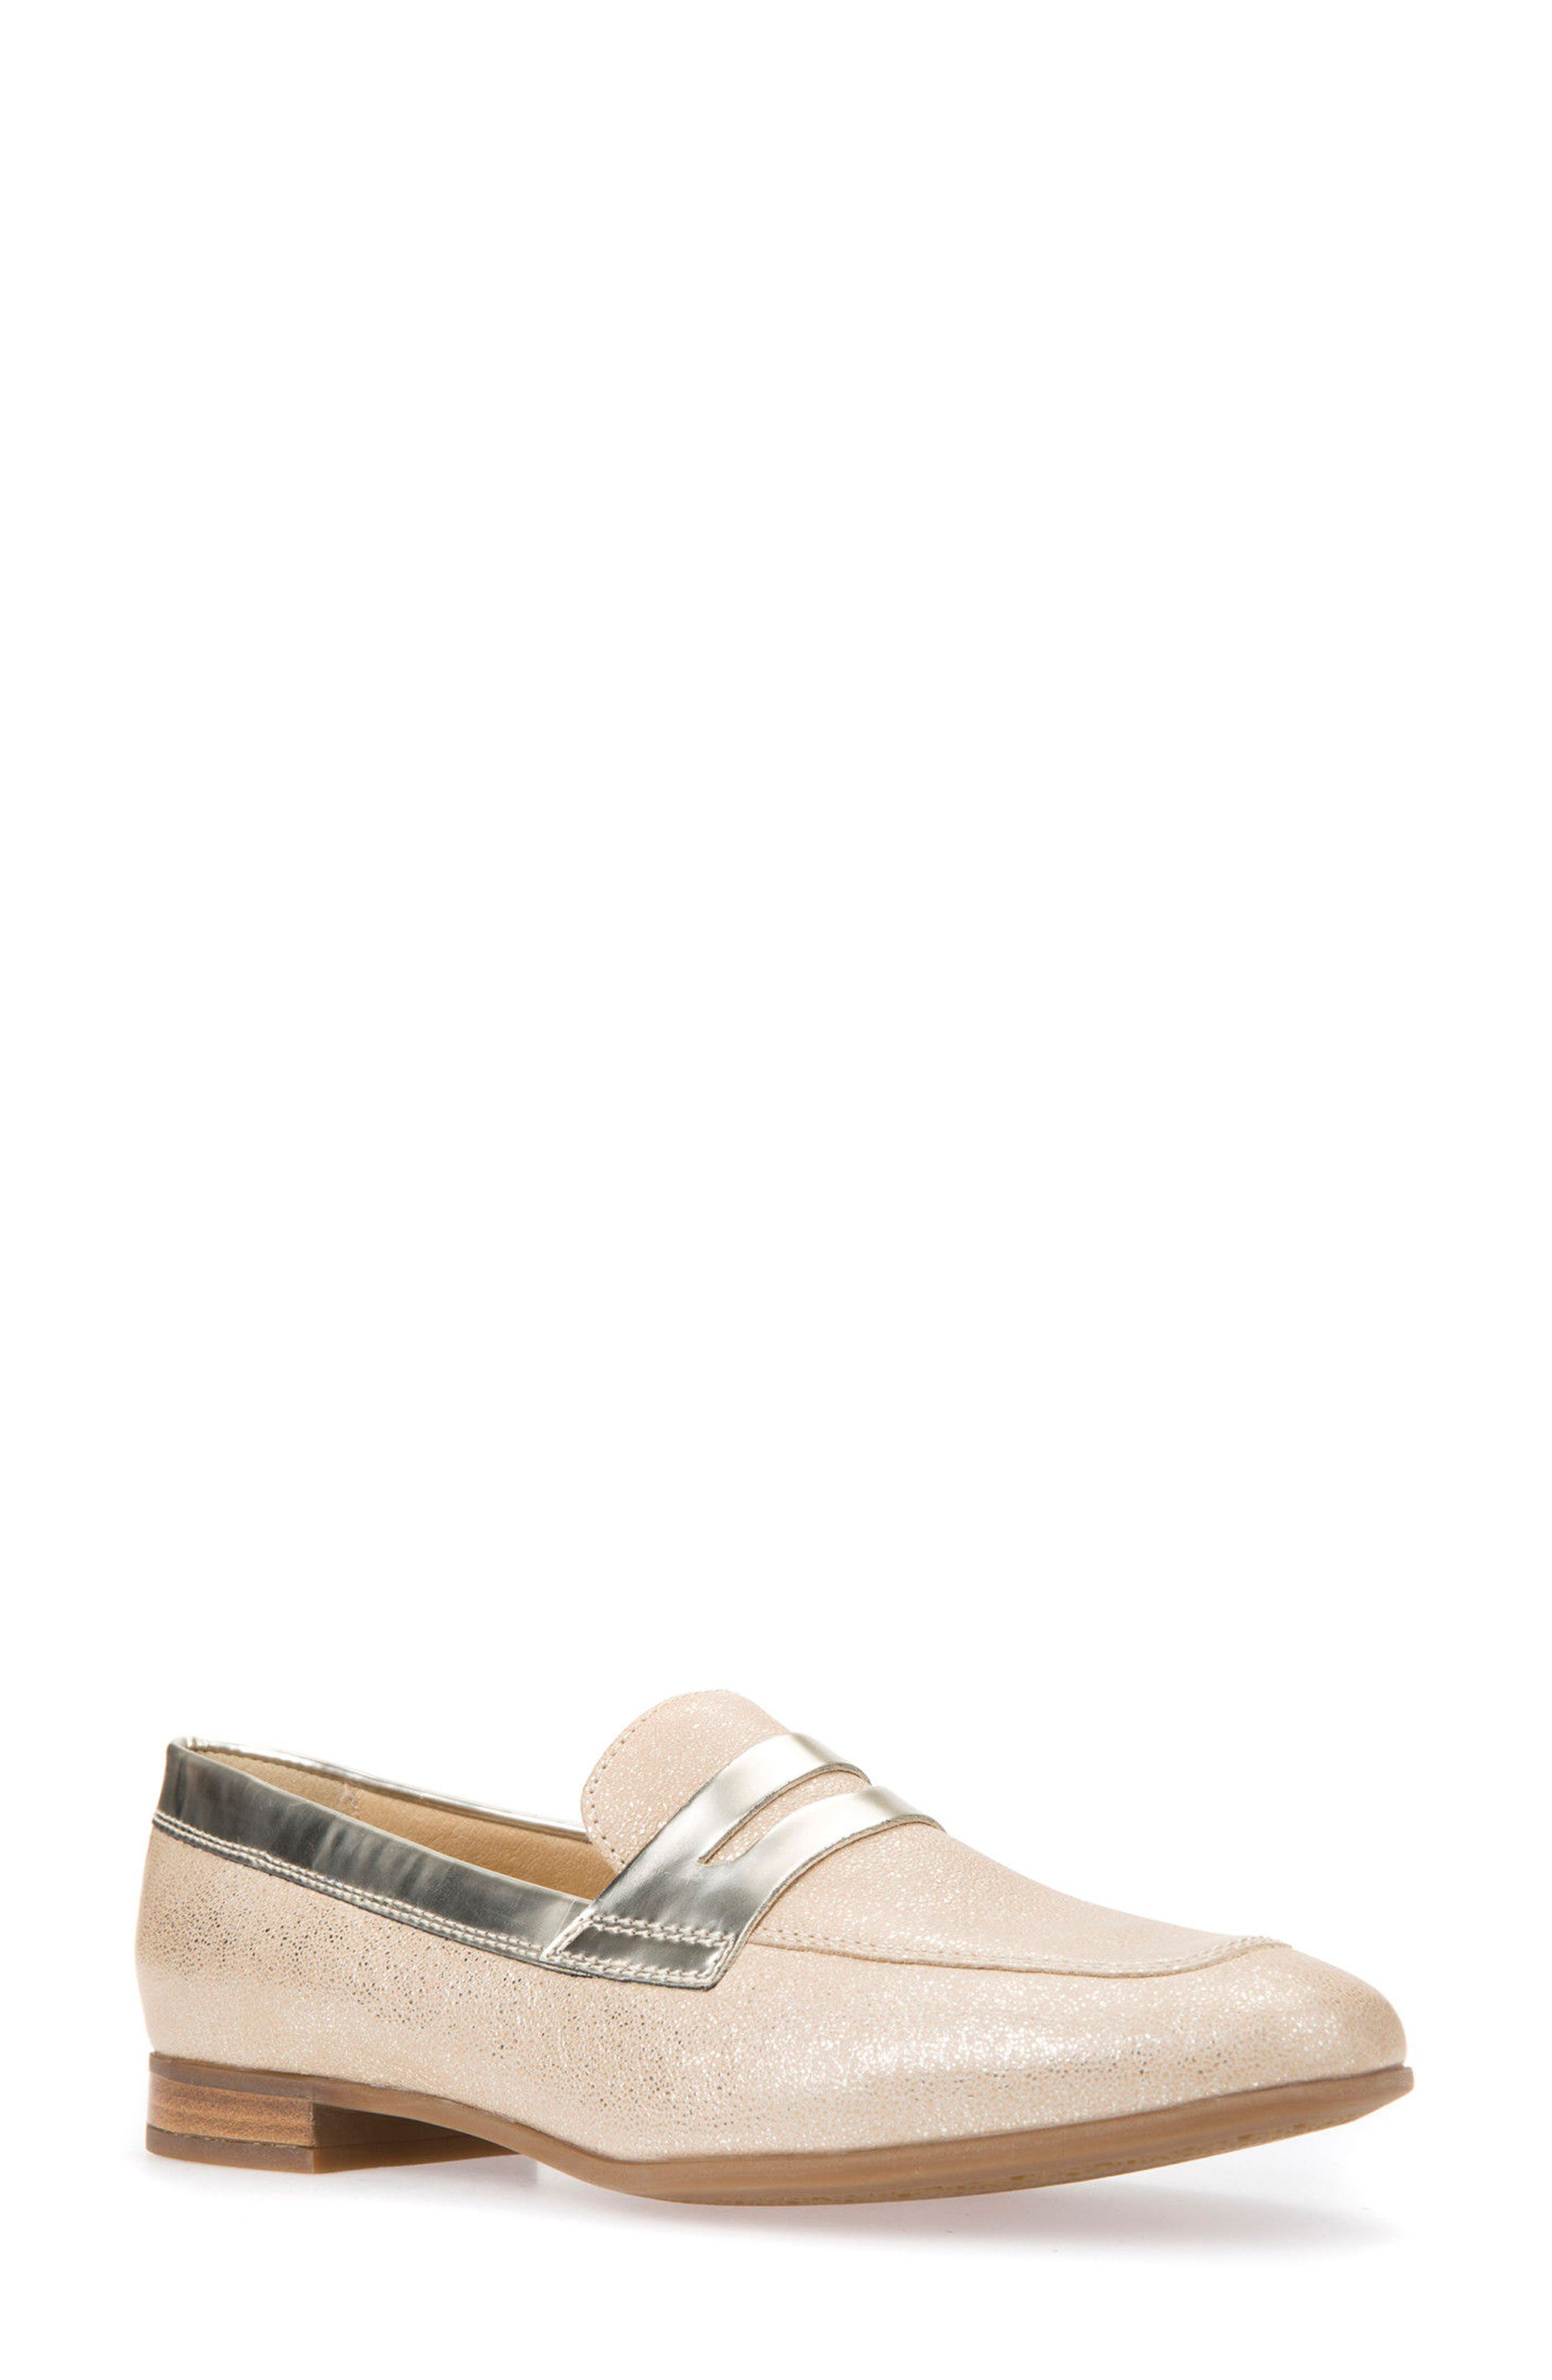 Alternate Image 1 Selected - Geox Marlyna Penny Loafer (Women)